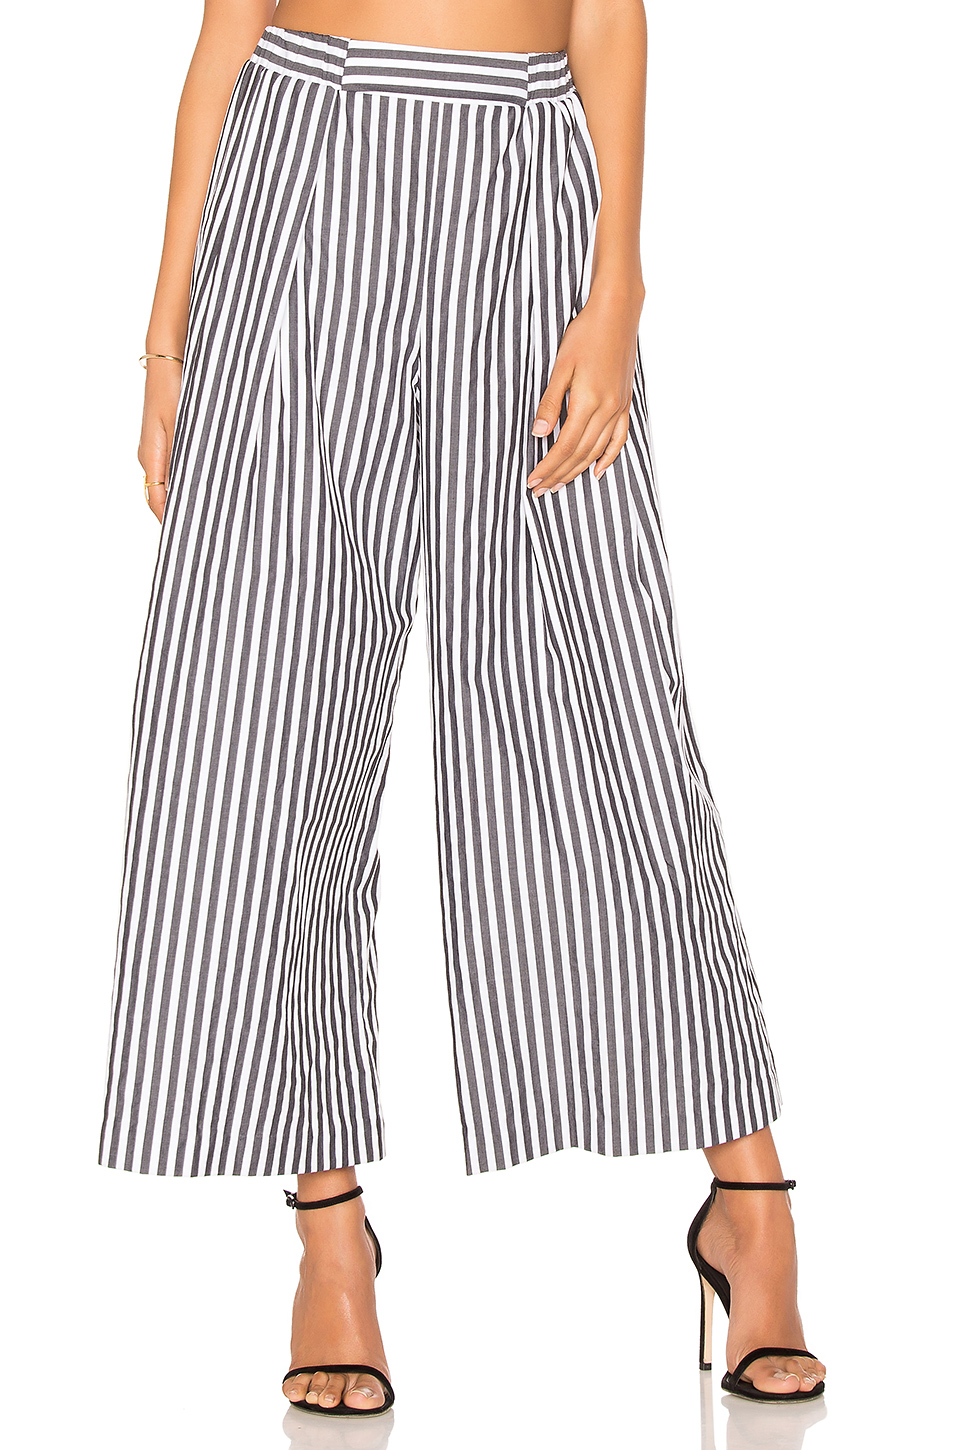 $175 Kendall and Kyle Culotte